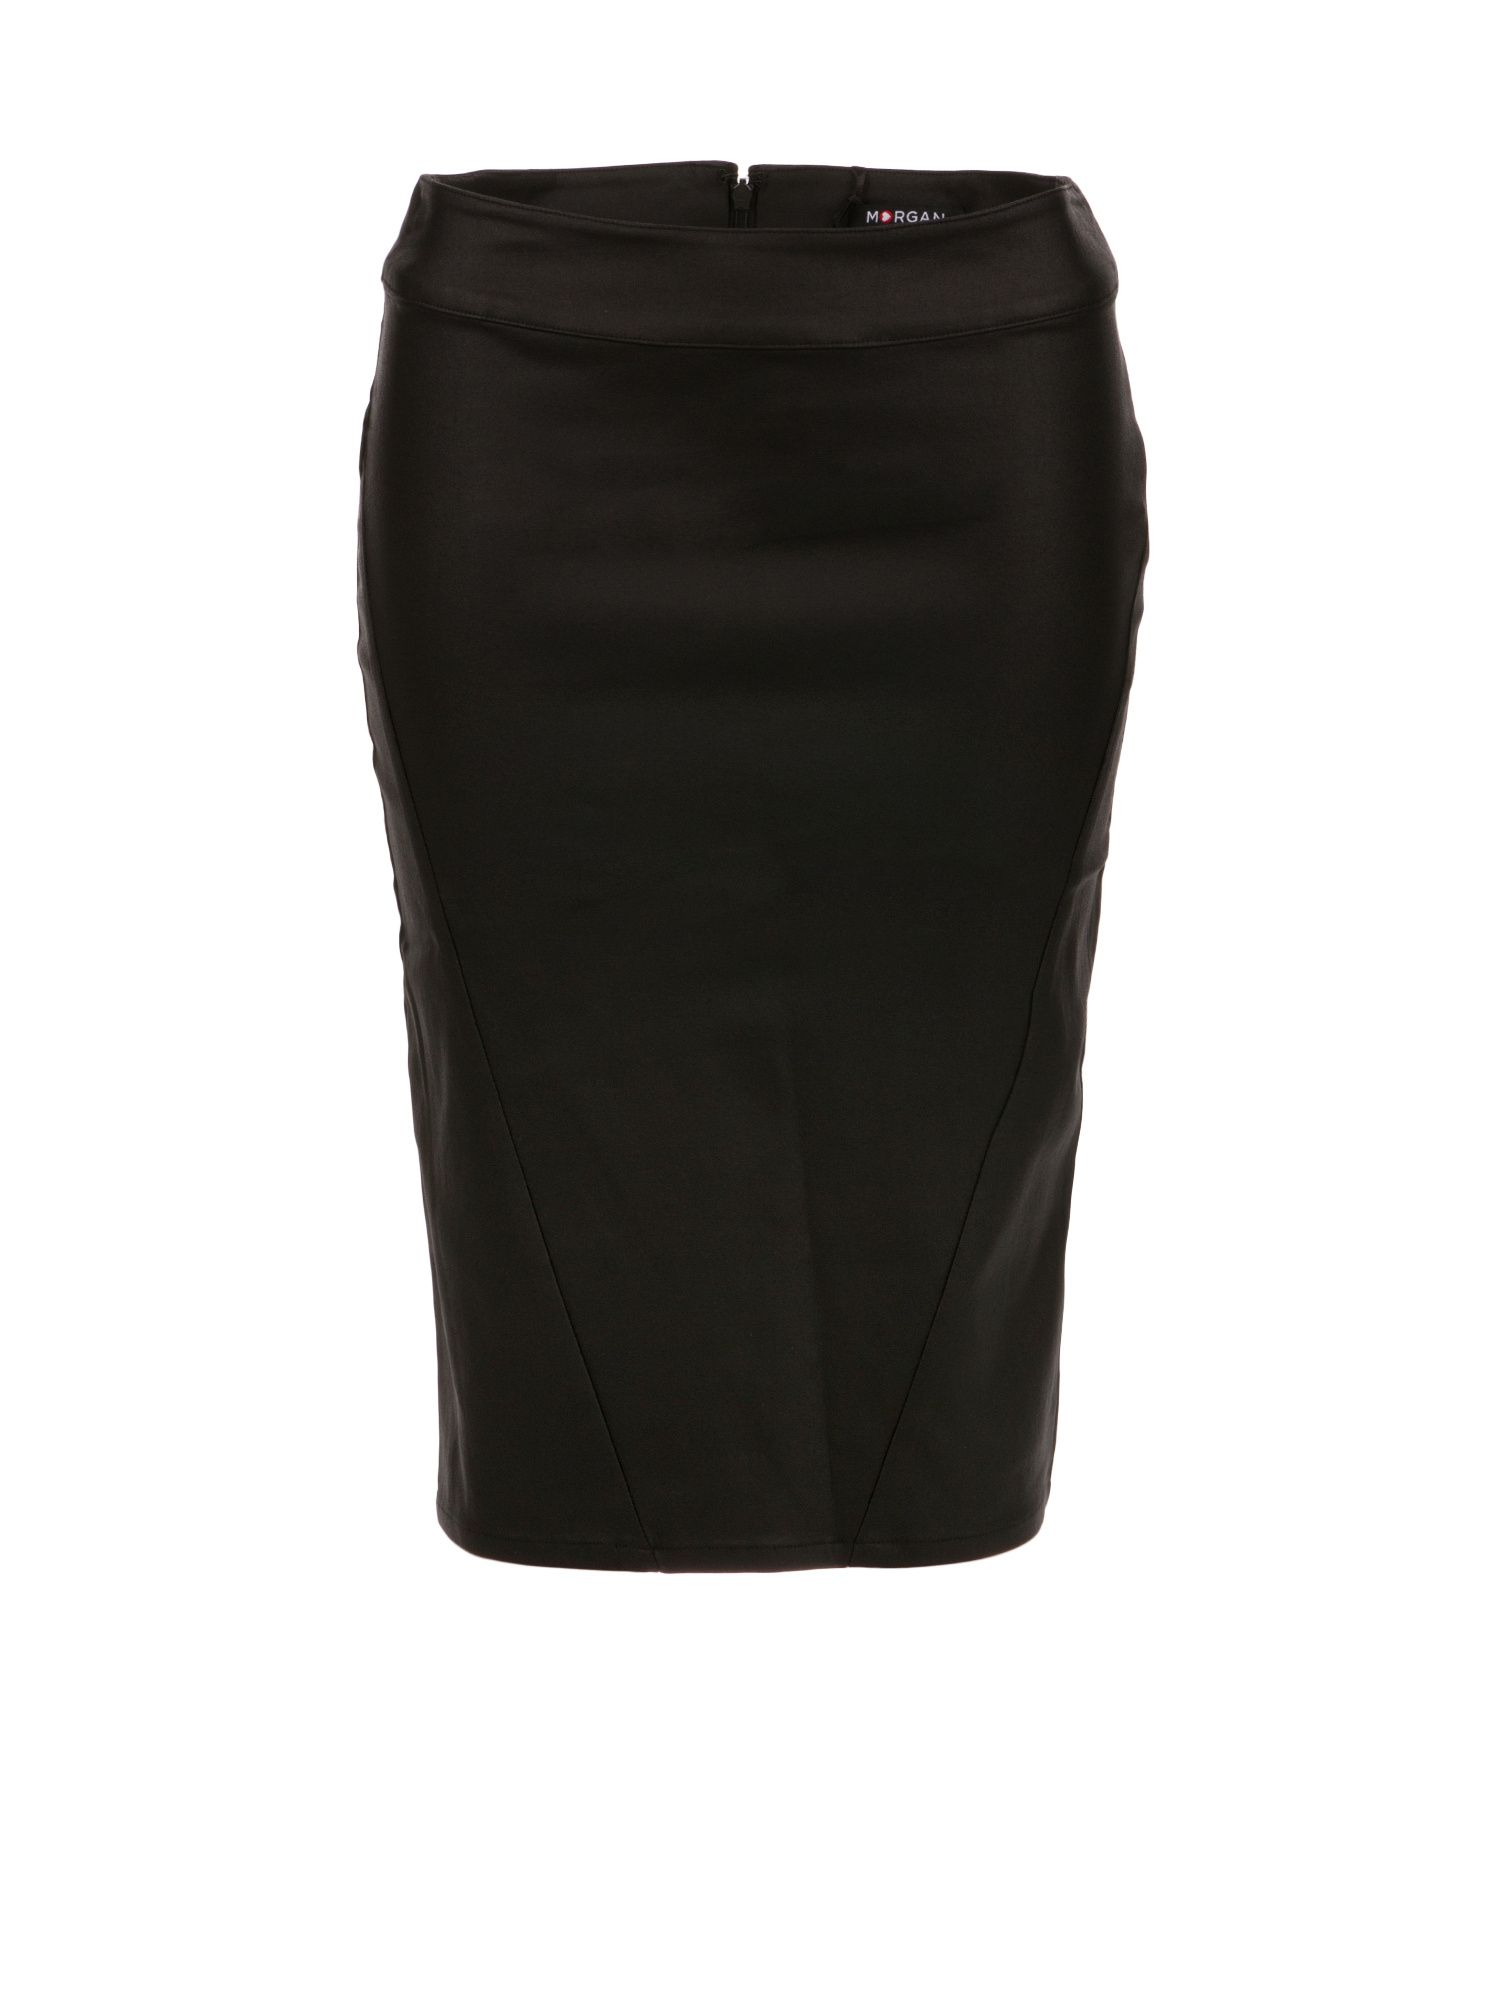 Morgan Shiny-Look Pencil Skirt, Black